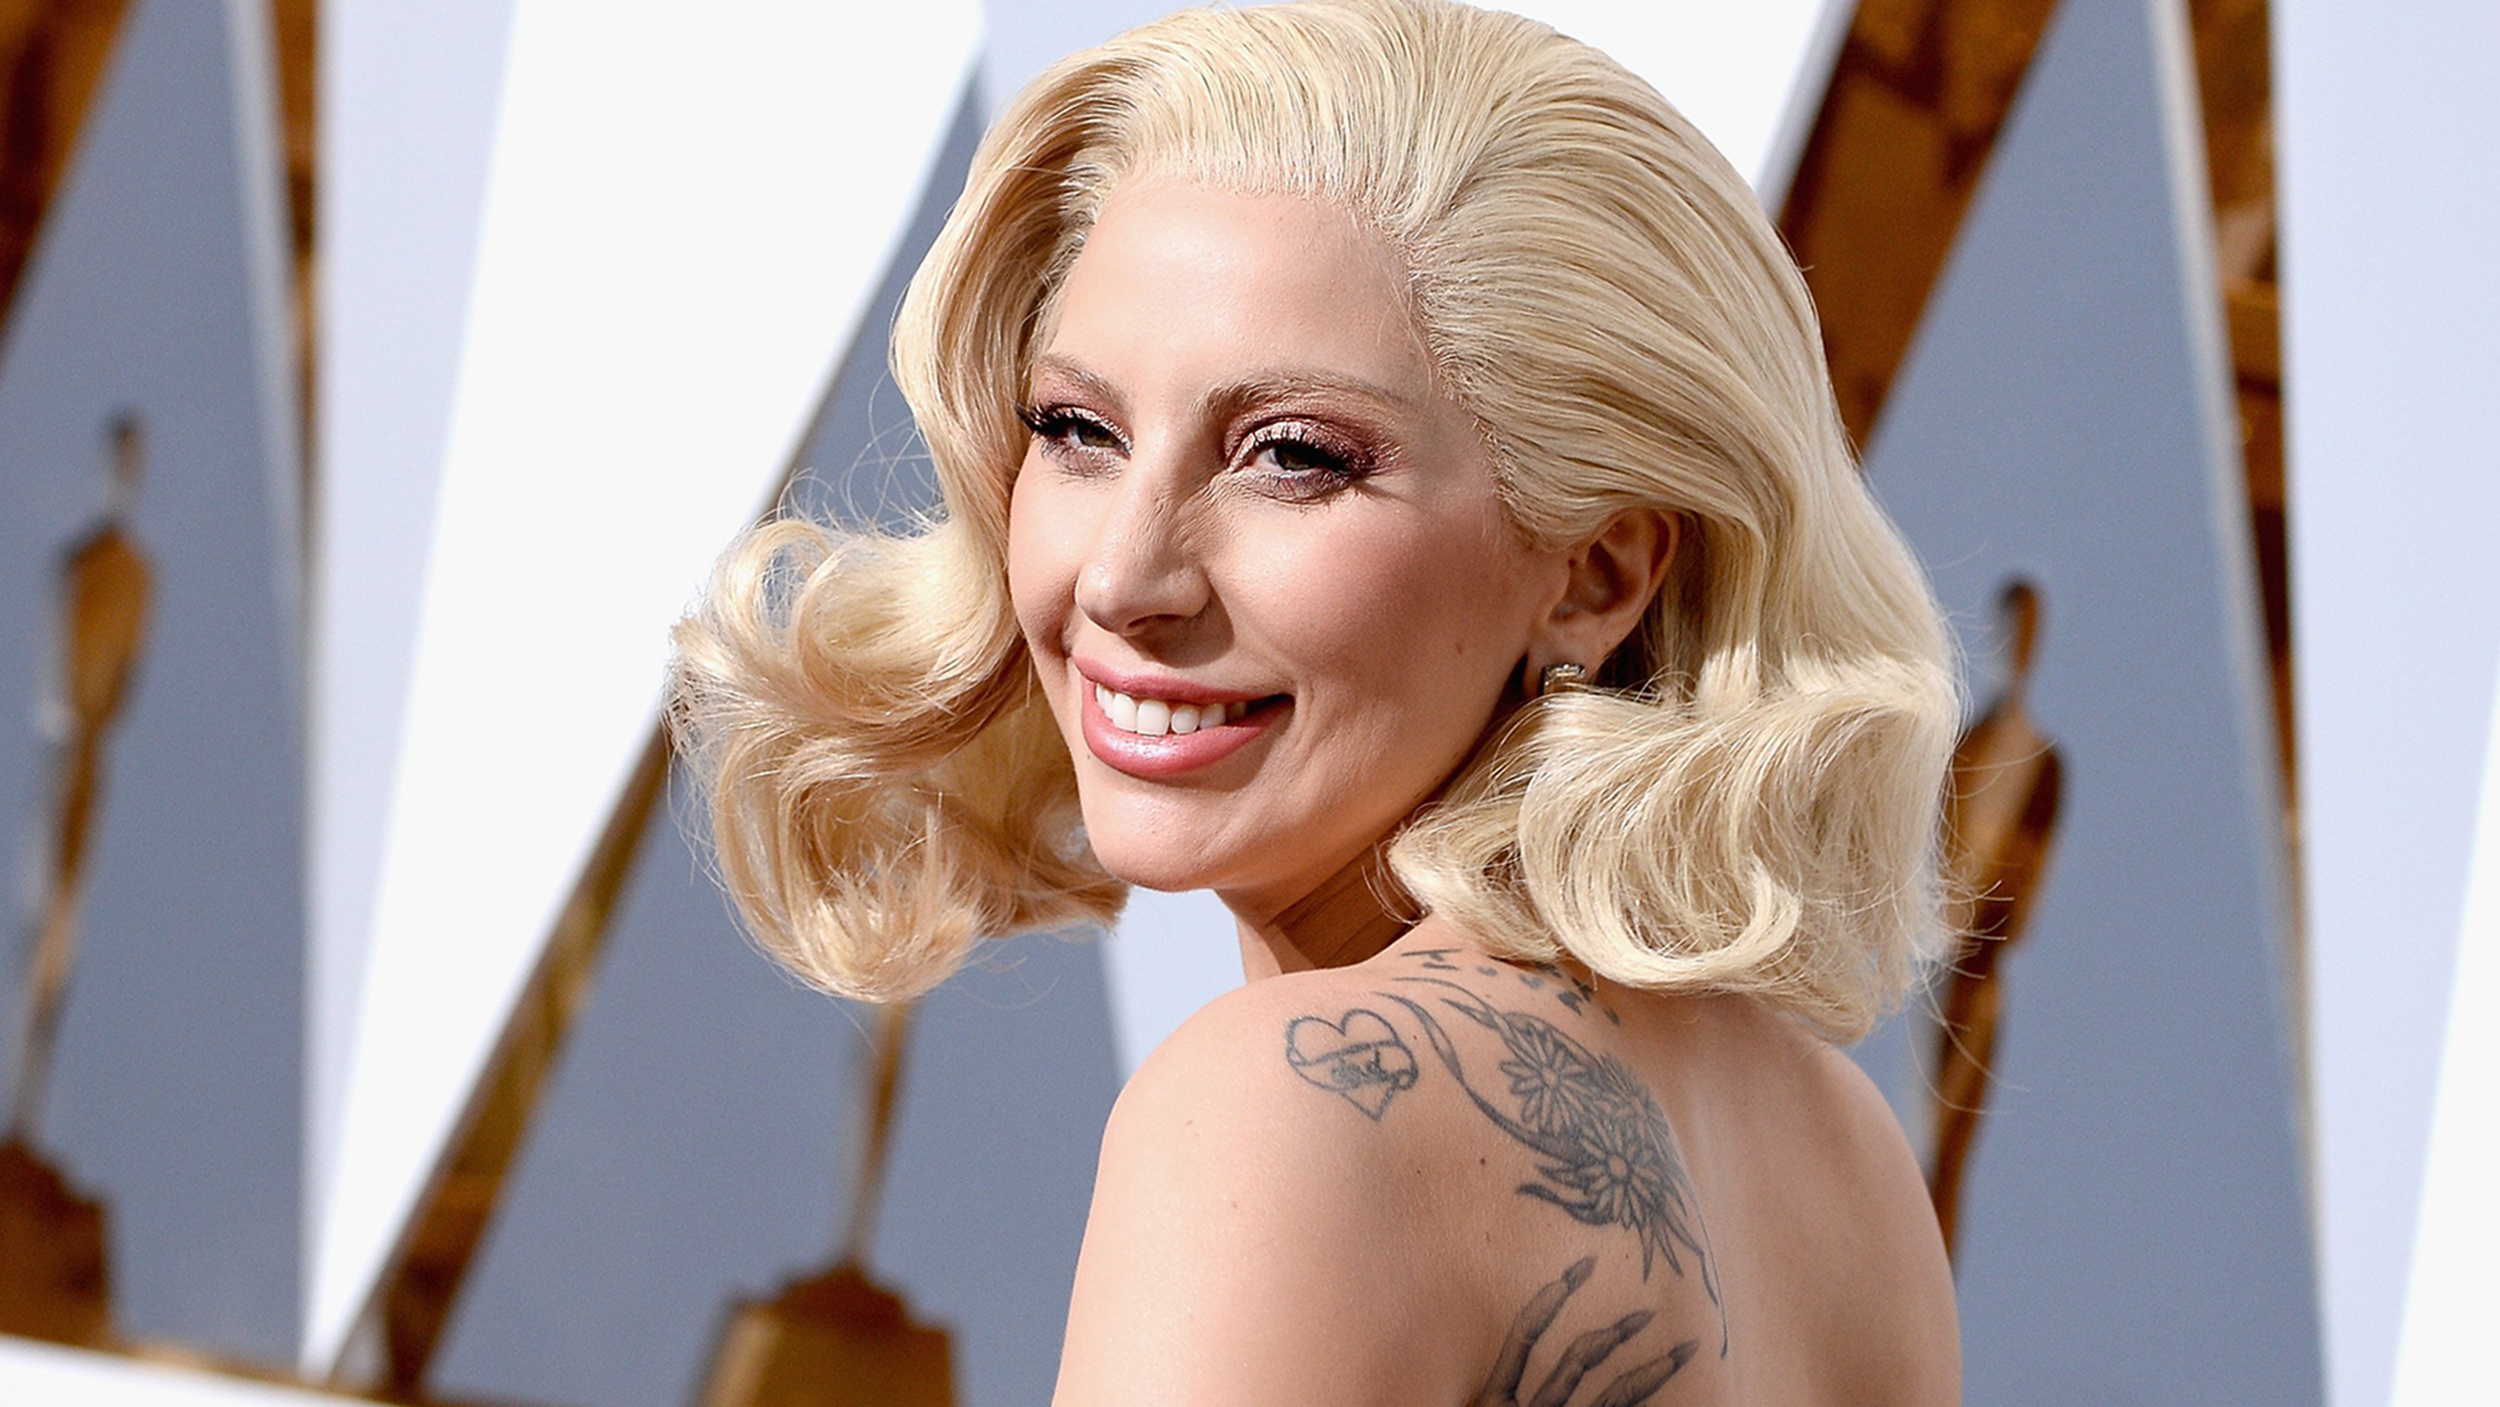 Lady Gaga Gets Inked In Solidarity With Sexual Assault